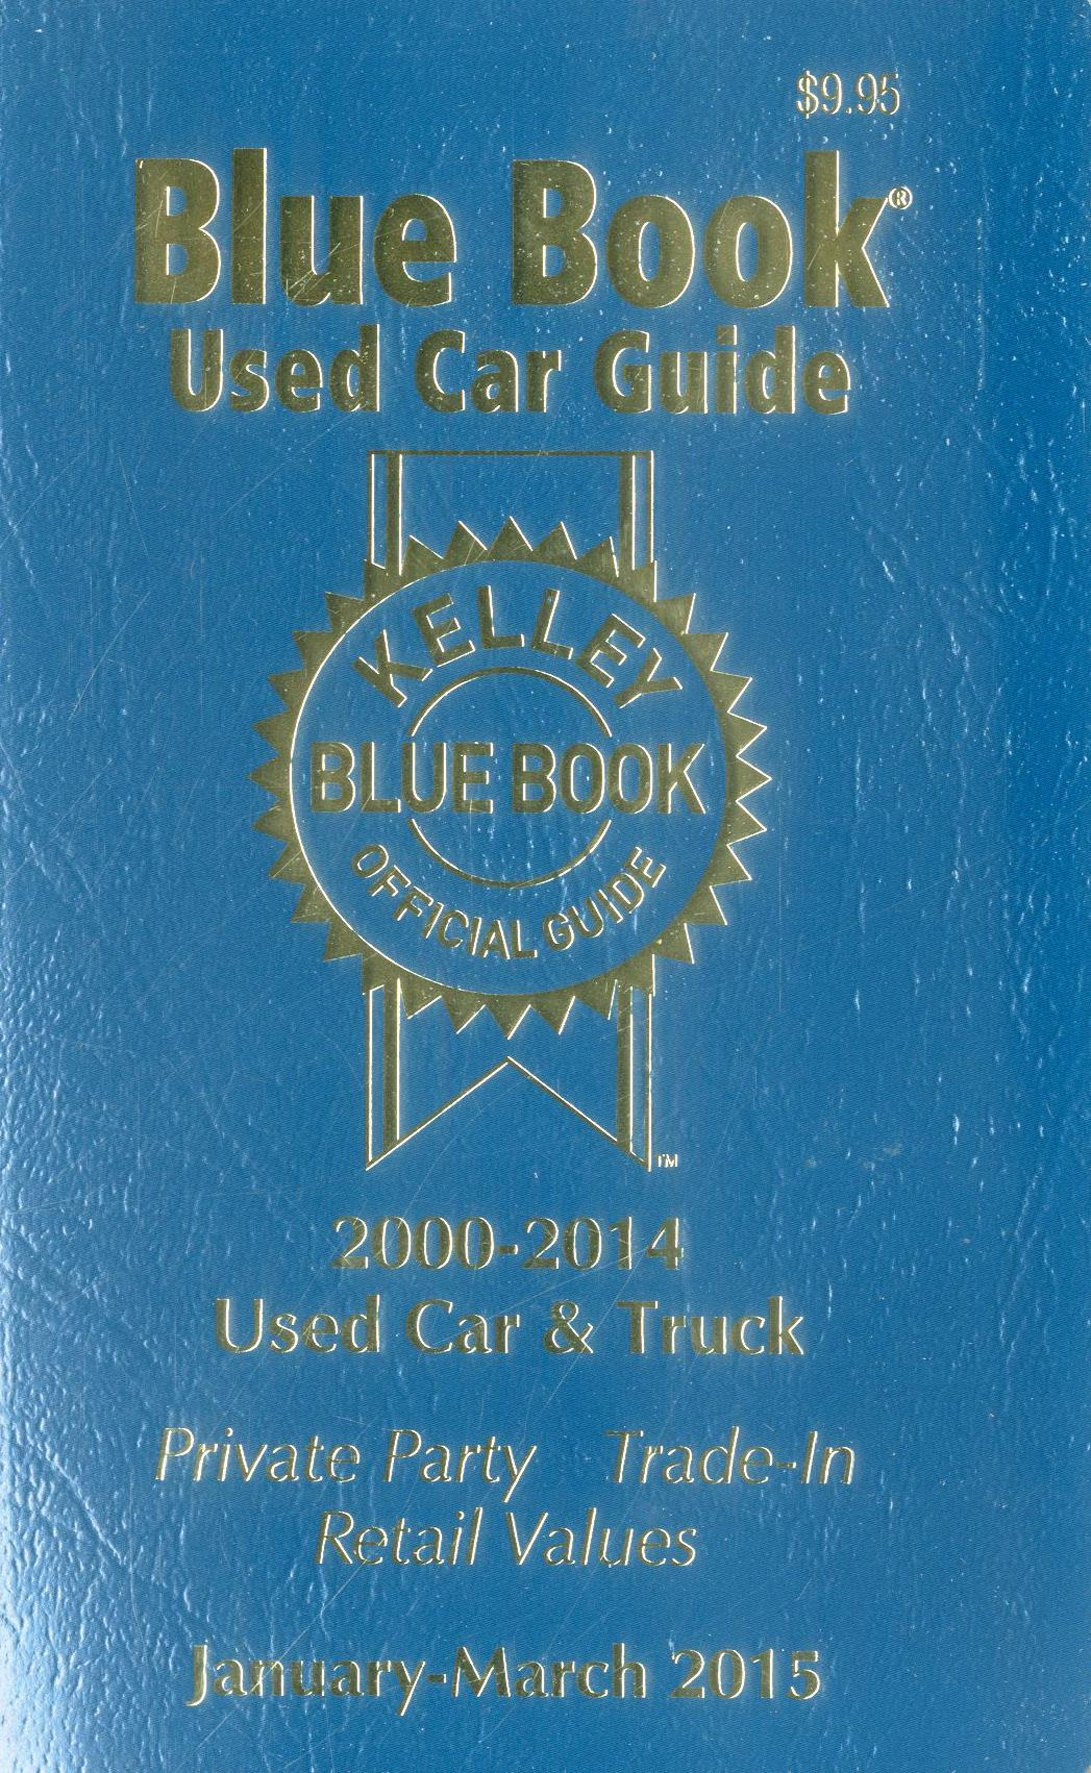 Kelley Blue Book Value Of Used Car Beautiful Kelley Blue Book Used Car Guide January March 2015 Kelley Blue